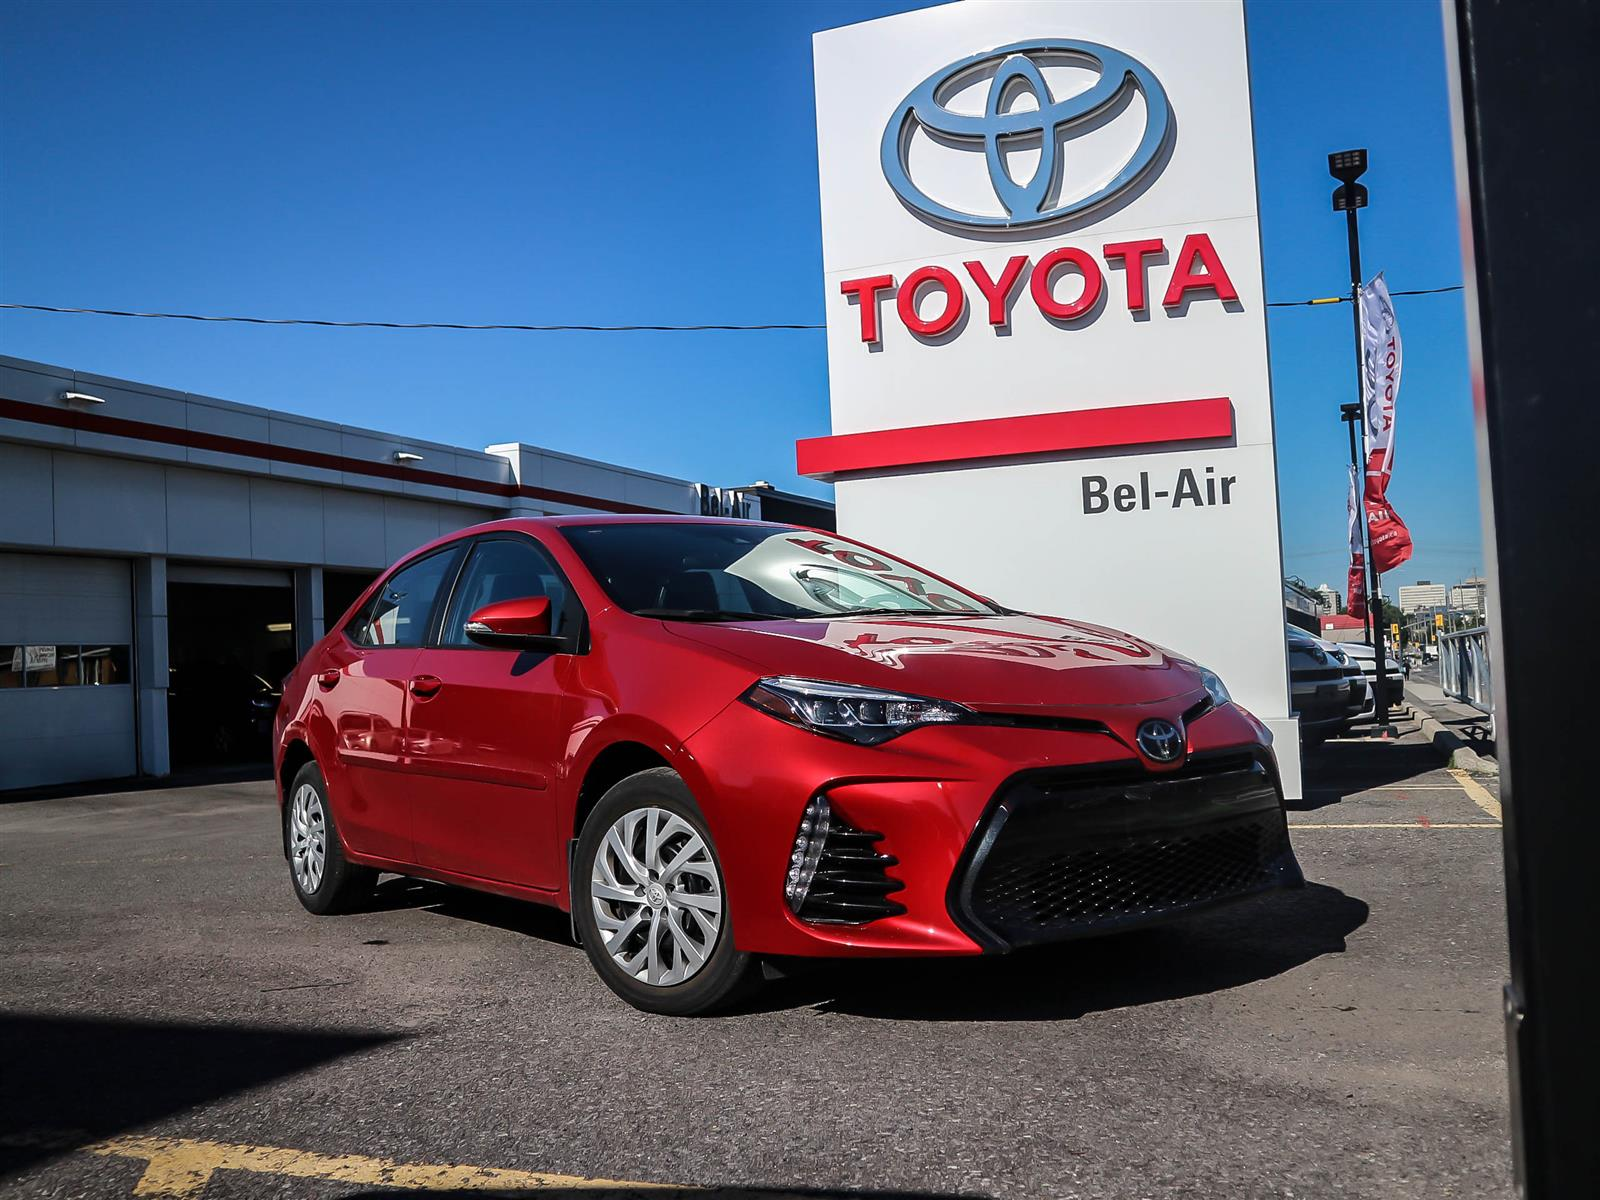 2018 Toyota Corolla at Bel-Air Toyota